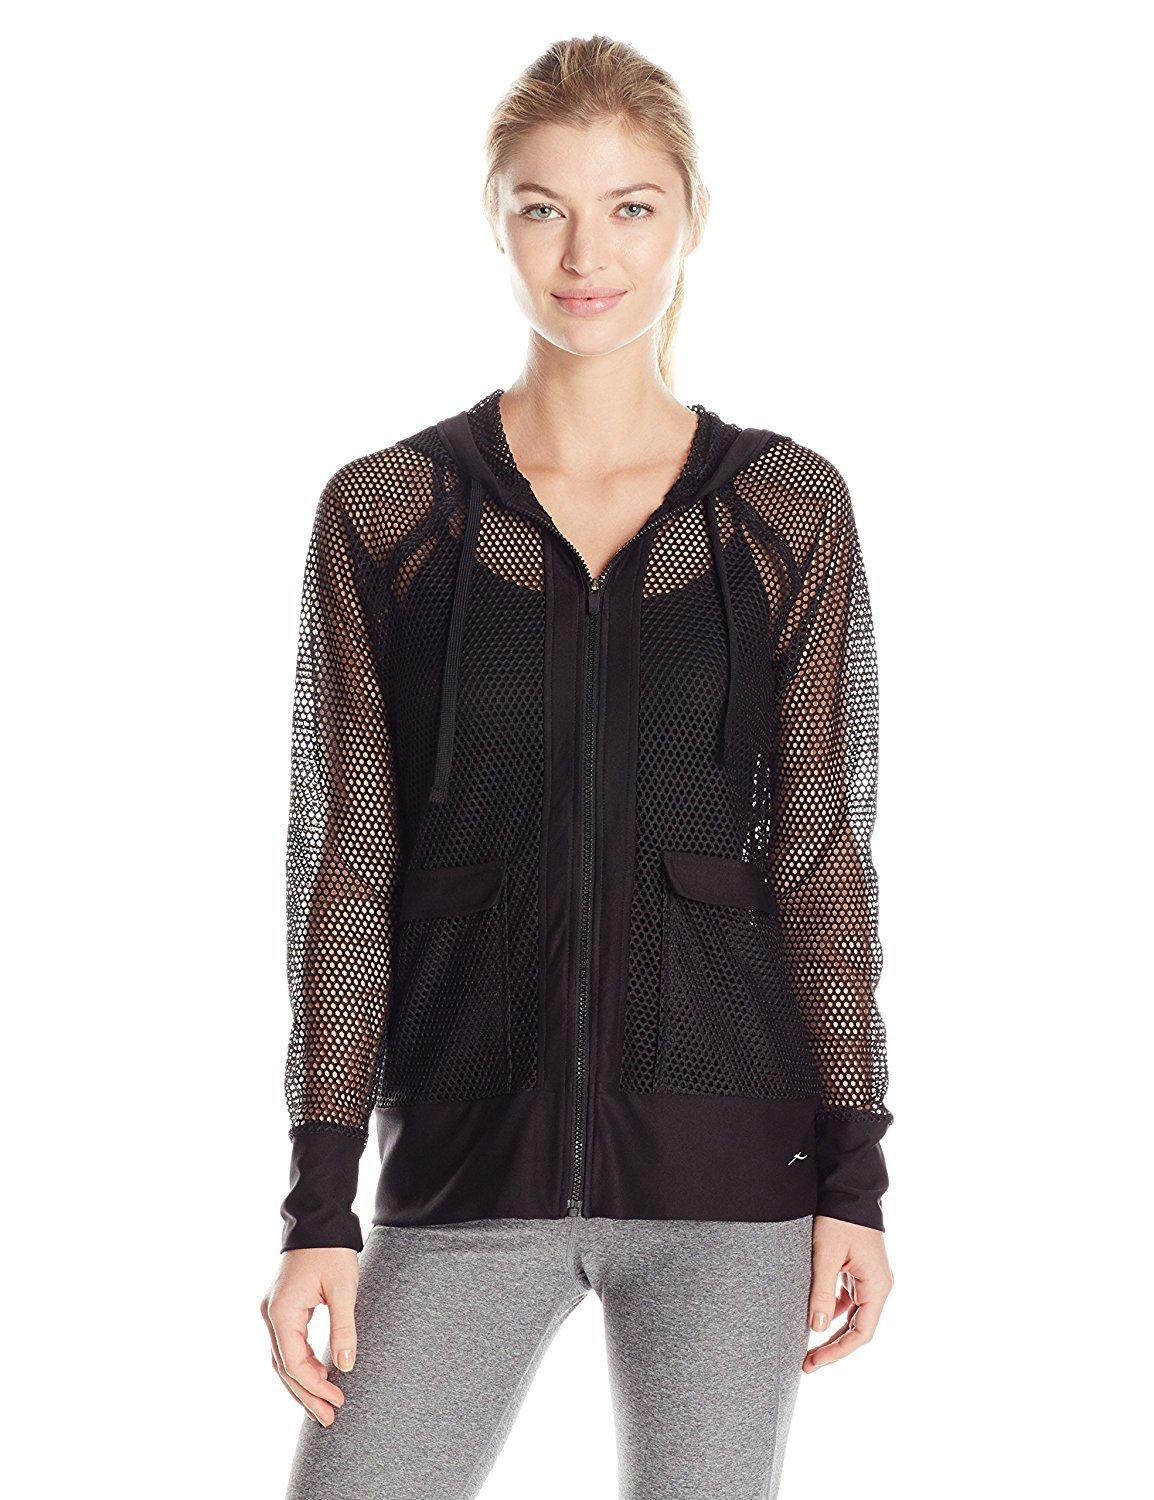 X by Gottex Women's Honeycomb Mesh Hoodie Jacket